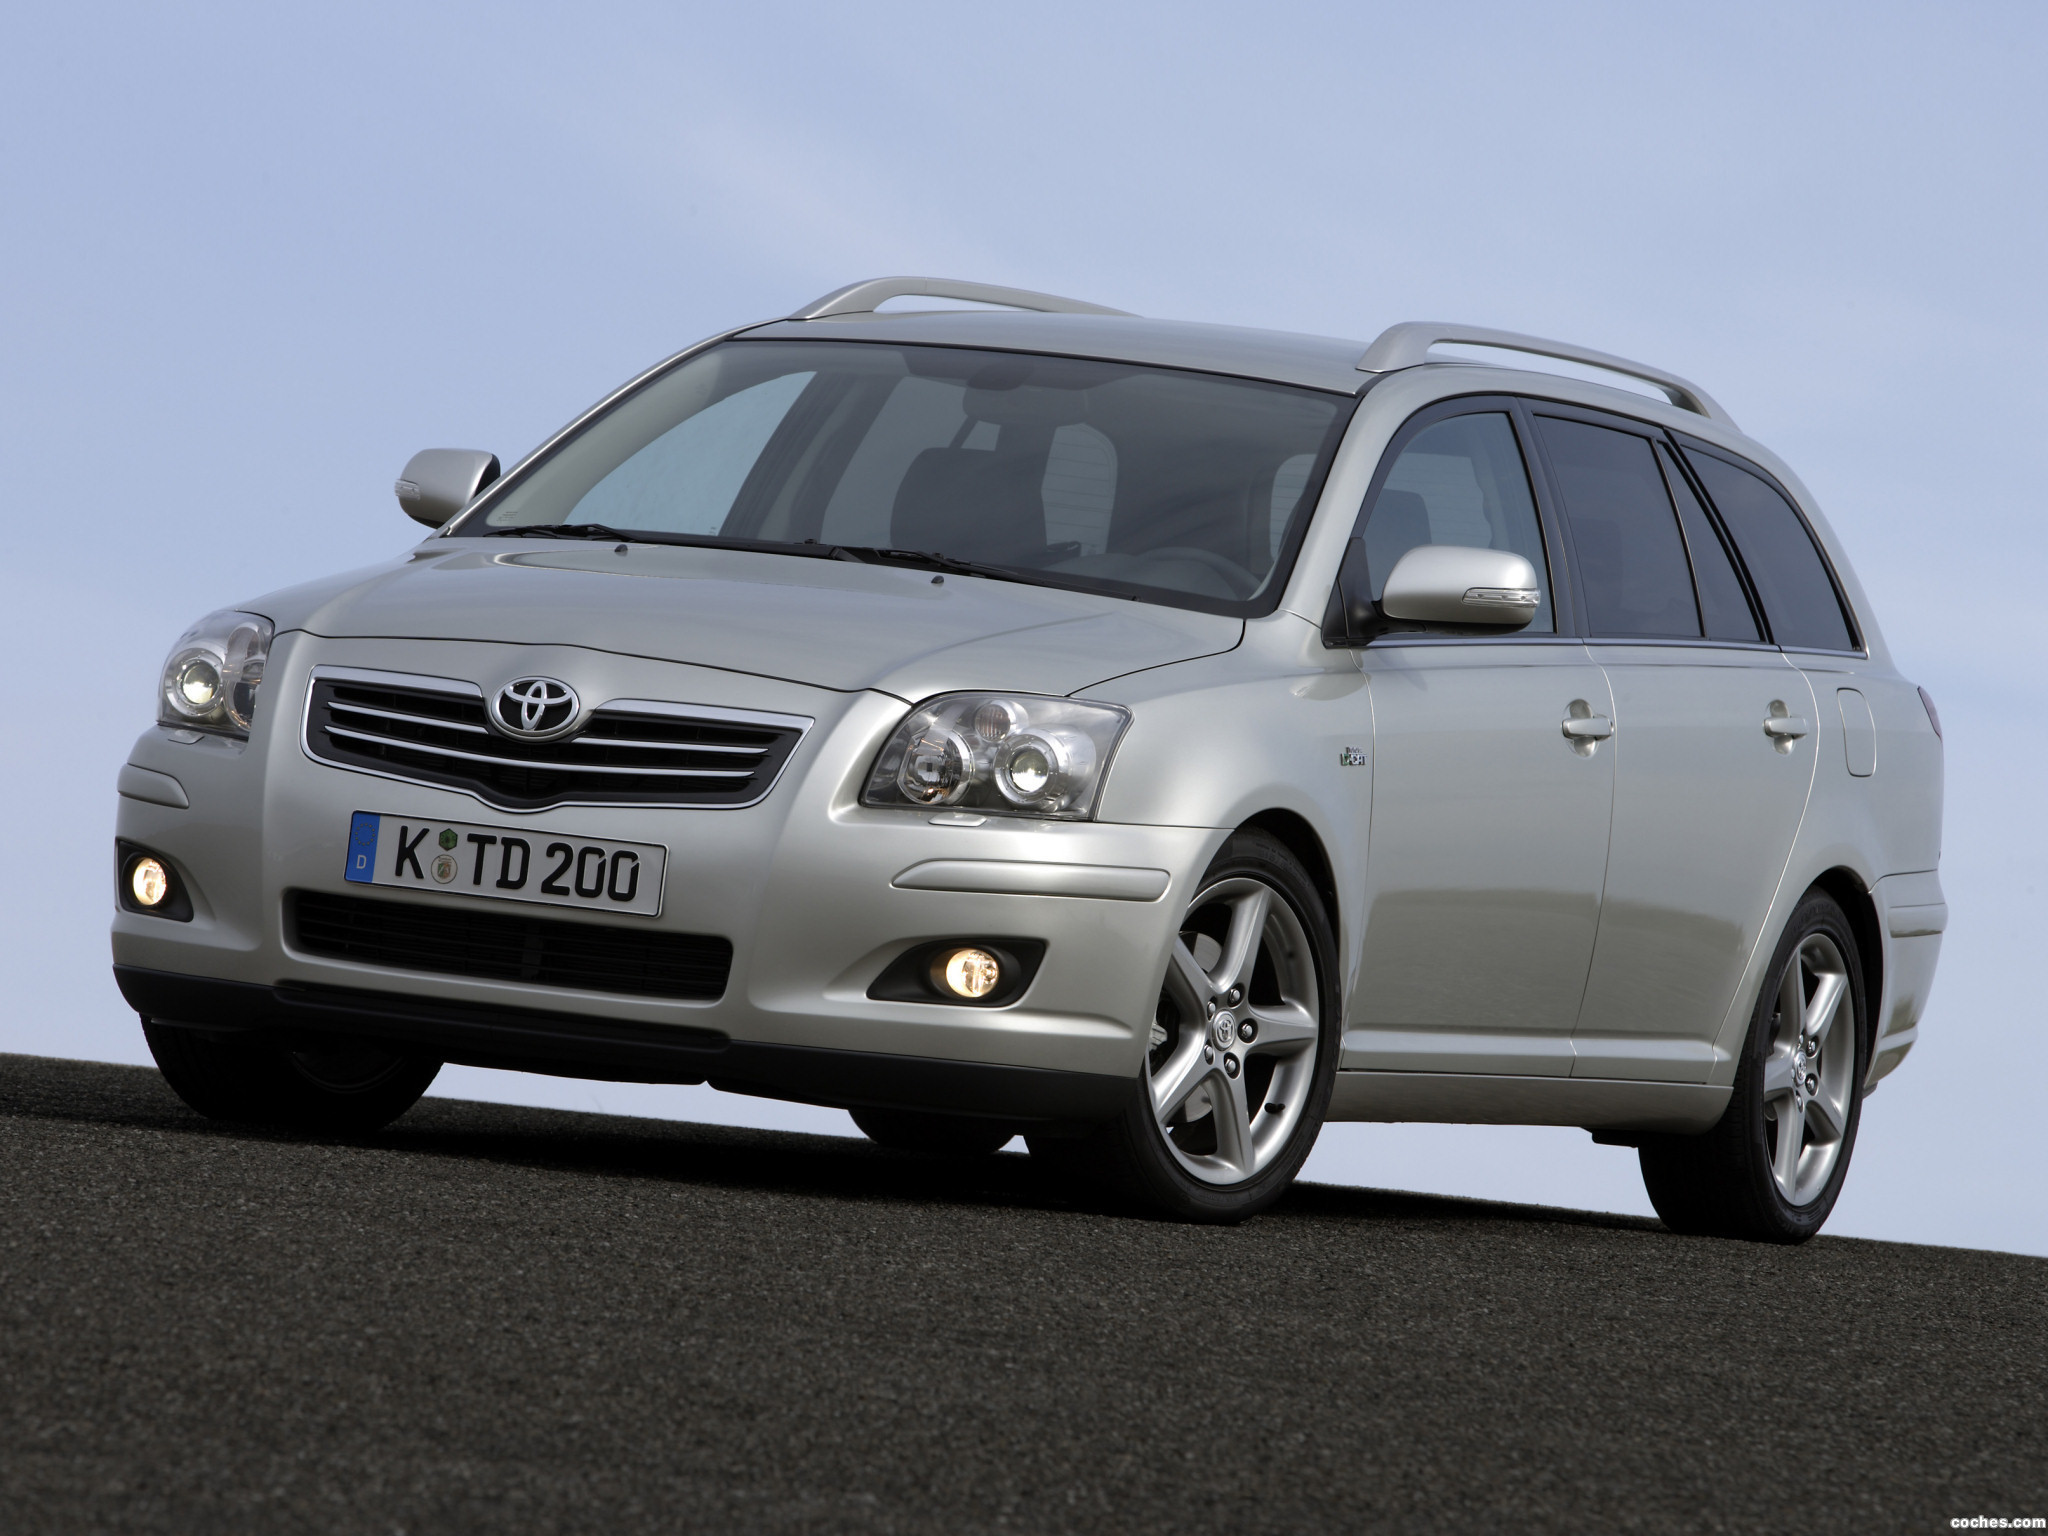 2007 toyota avensis 2 4 related infomation specifications weili automotive network. Black Bedroom Furniture Sets. Home Design Ideas